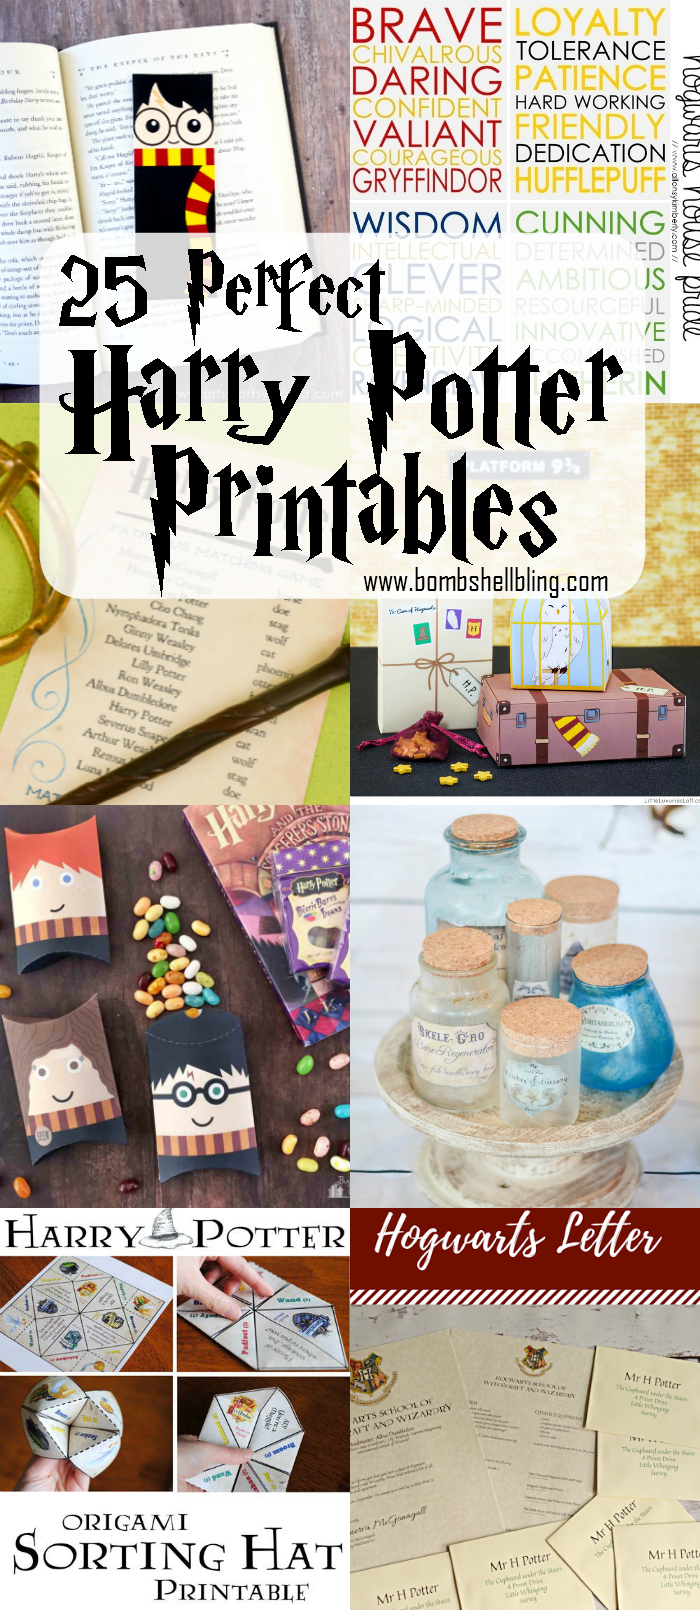 photograph regarding Printable Game Covers identify 25 Suitable Harry Potter Printables - Gathered via Bombs